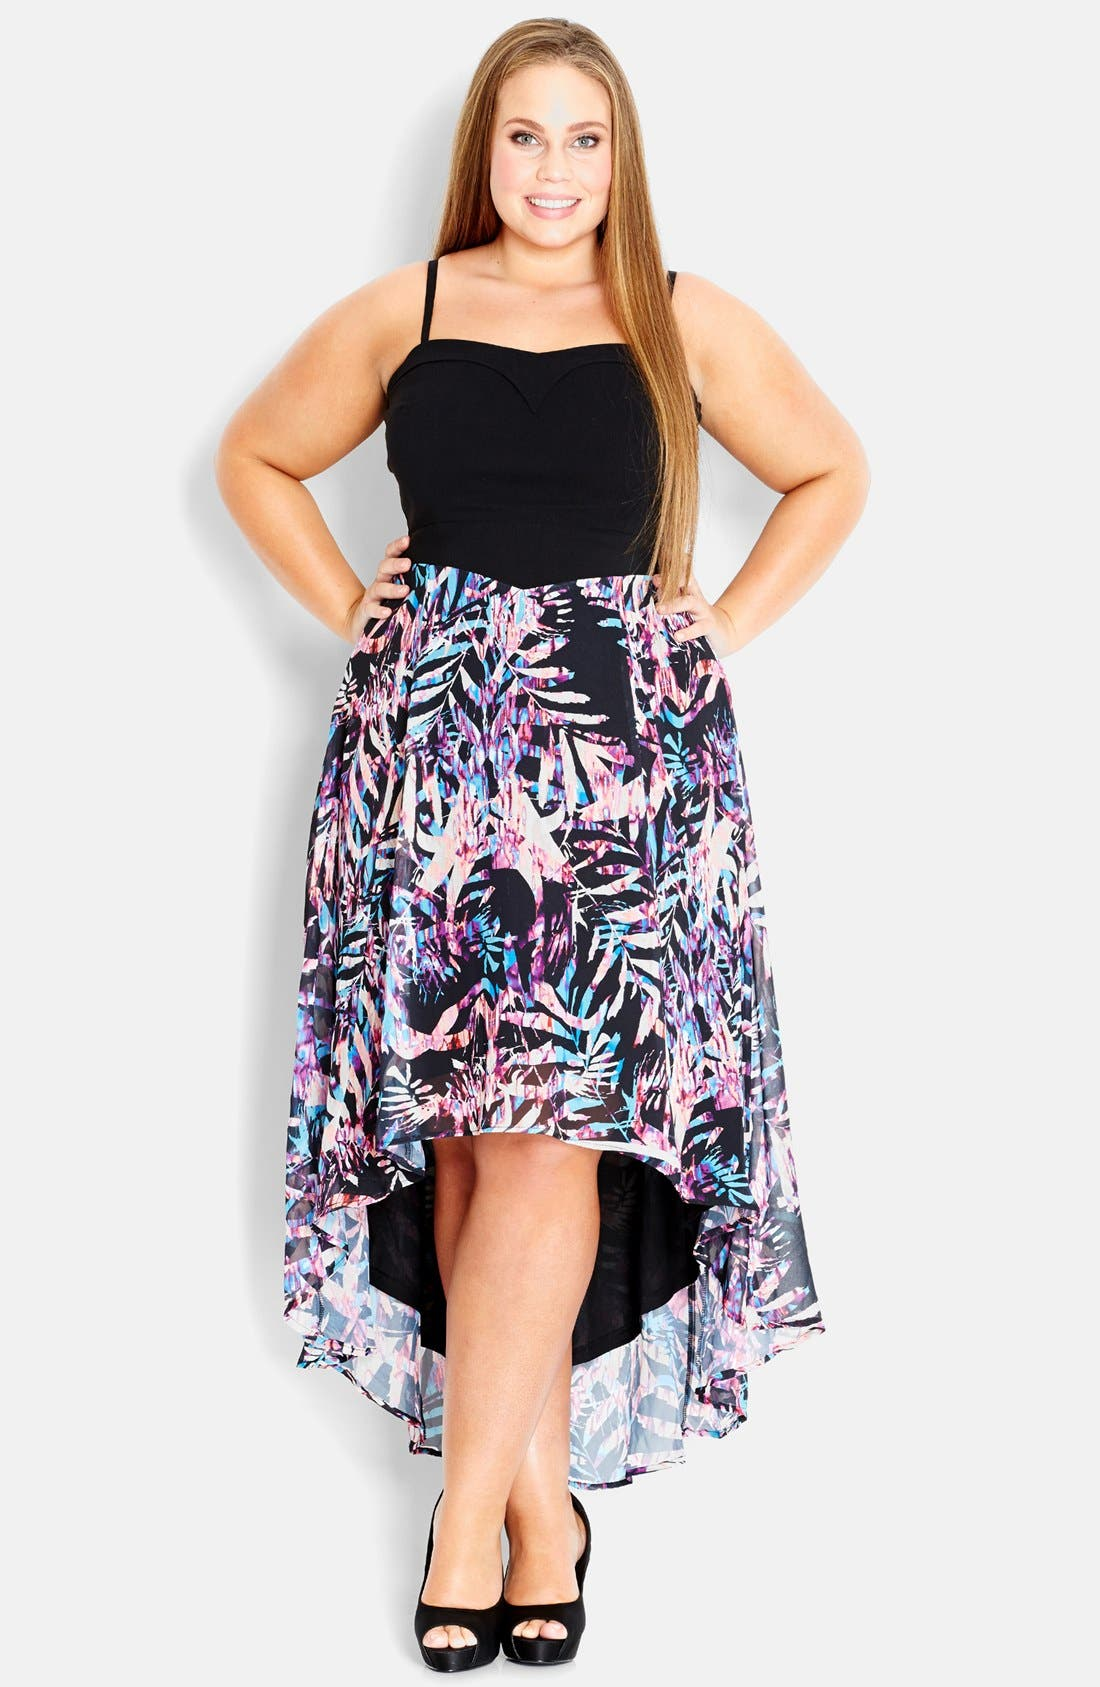 Alternate Image 1 Selected - City Chic Jungle Print High/Low Maxi Dress (Plus Size)